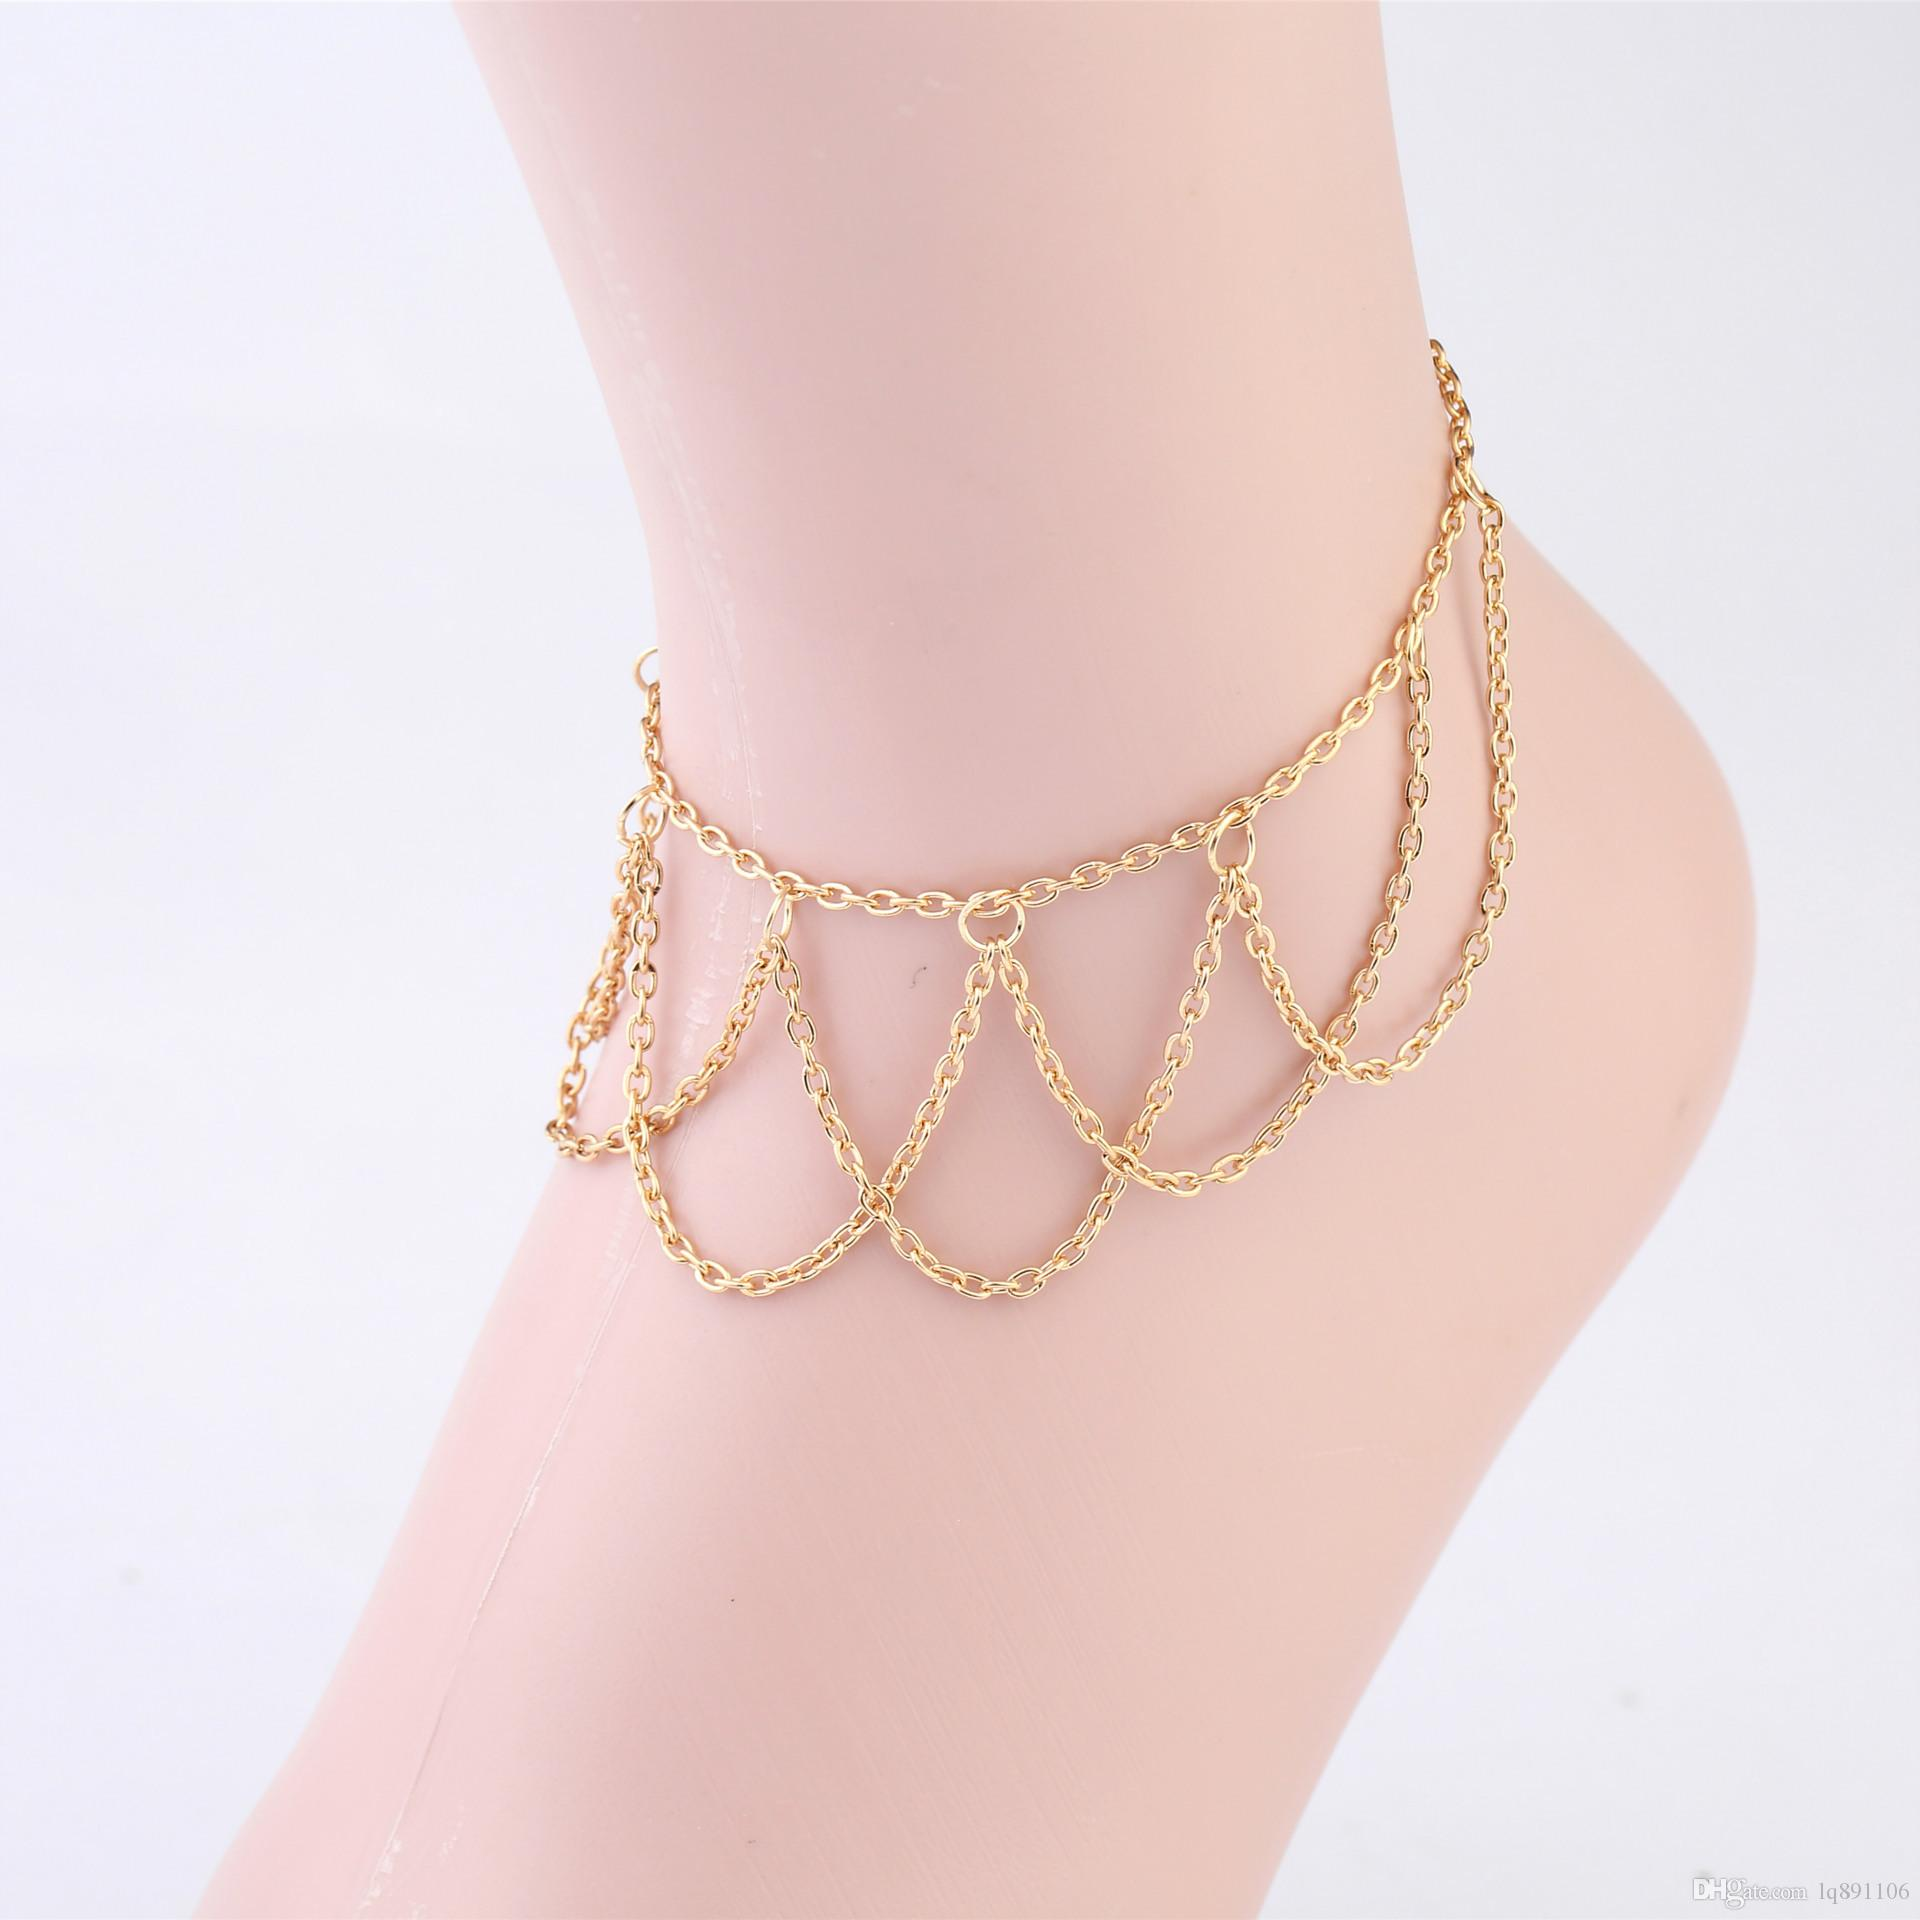 braided anklet foxtail free overstock gold product bracelet jewelry today link shipping watches ankle inch